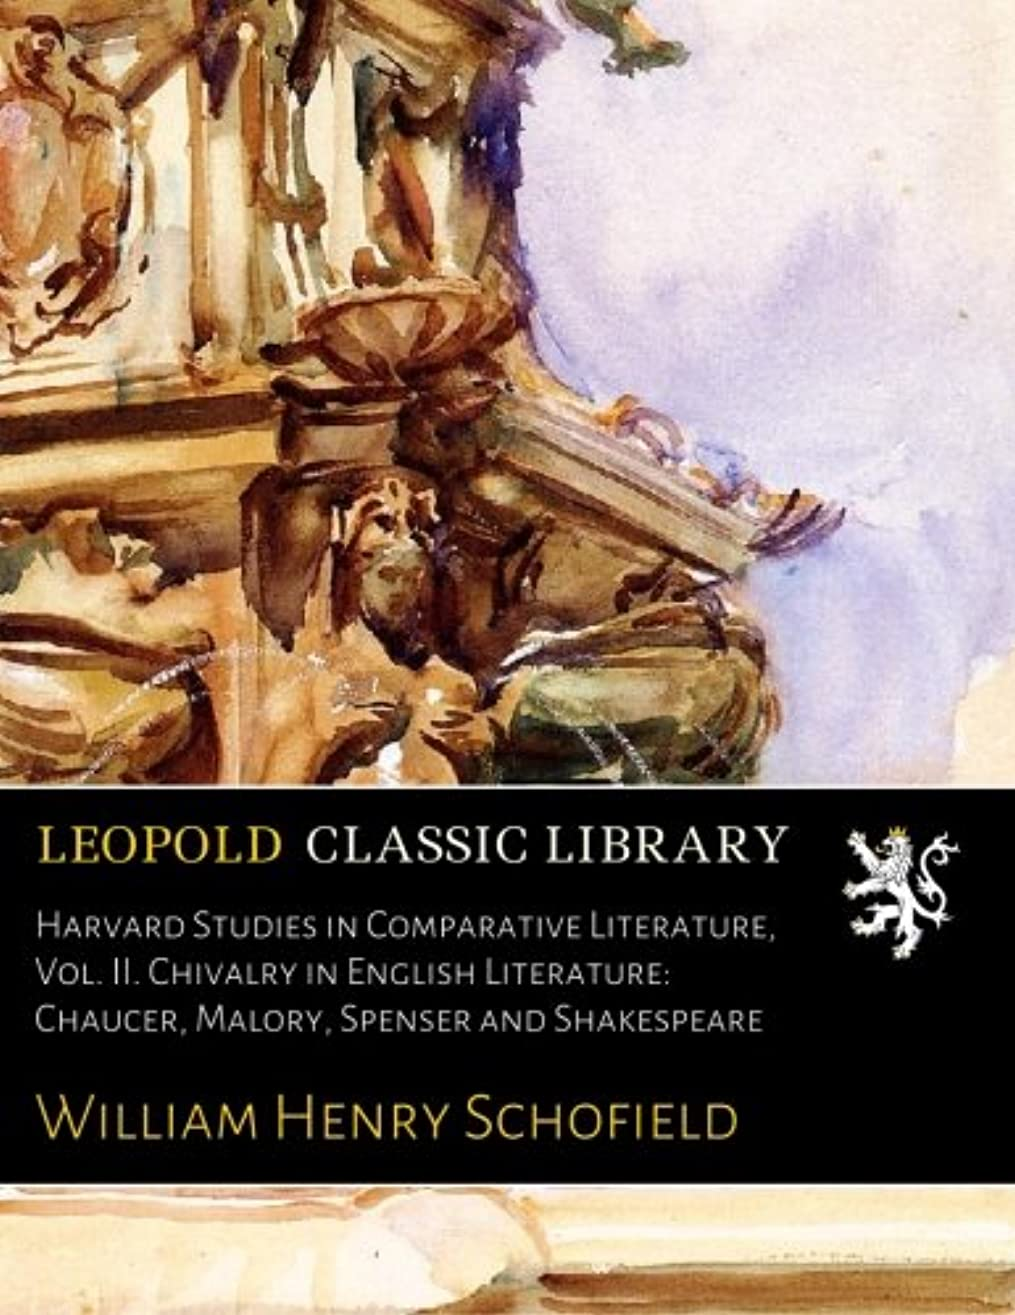 征服ラインペレグリネーションHarvard Studies in Comparative Literature, Vol. II. Chivalry in English Literature: Chaucer, Malory, Spenser and Shakespeare